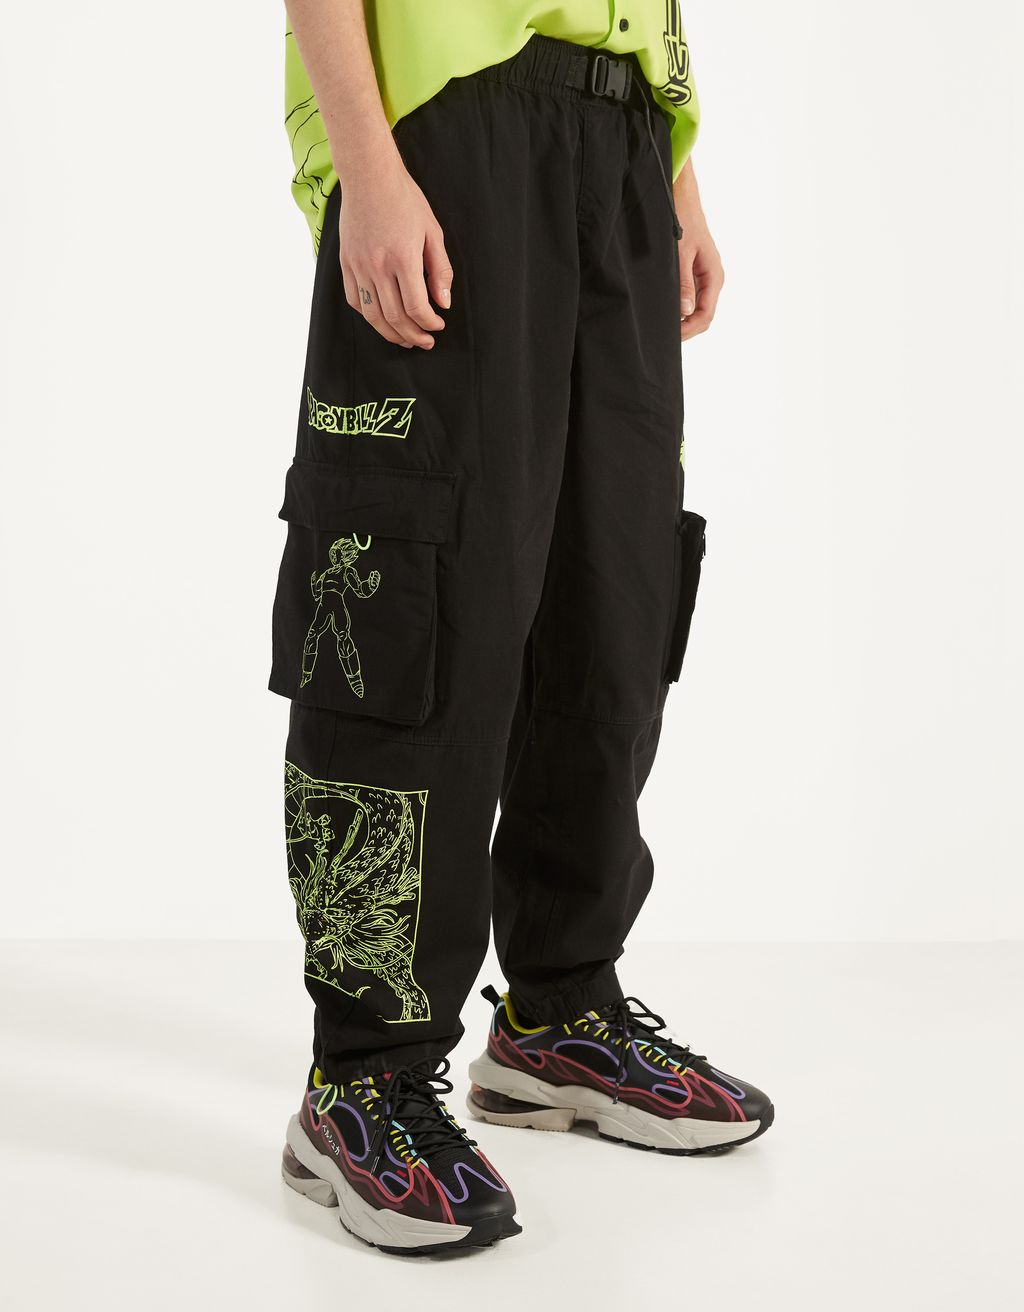 Dragon Ball Z x Bershka cargo trousers